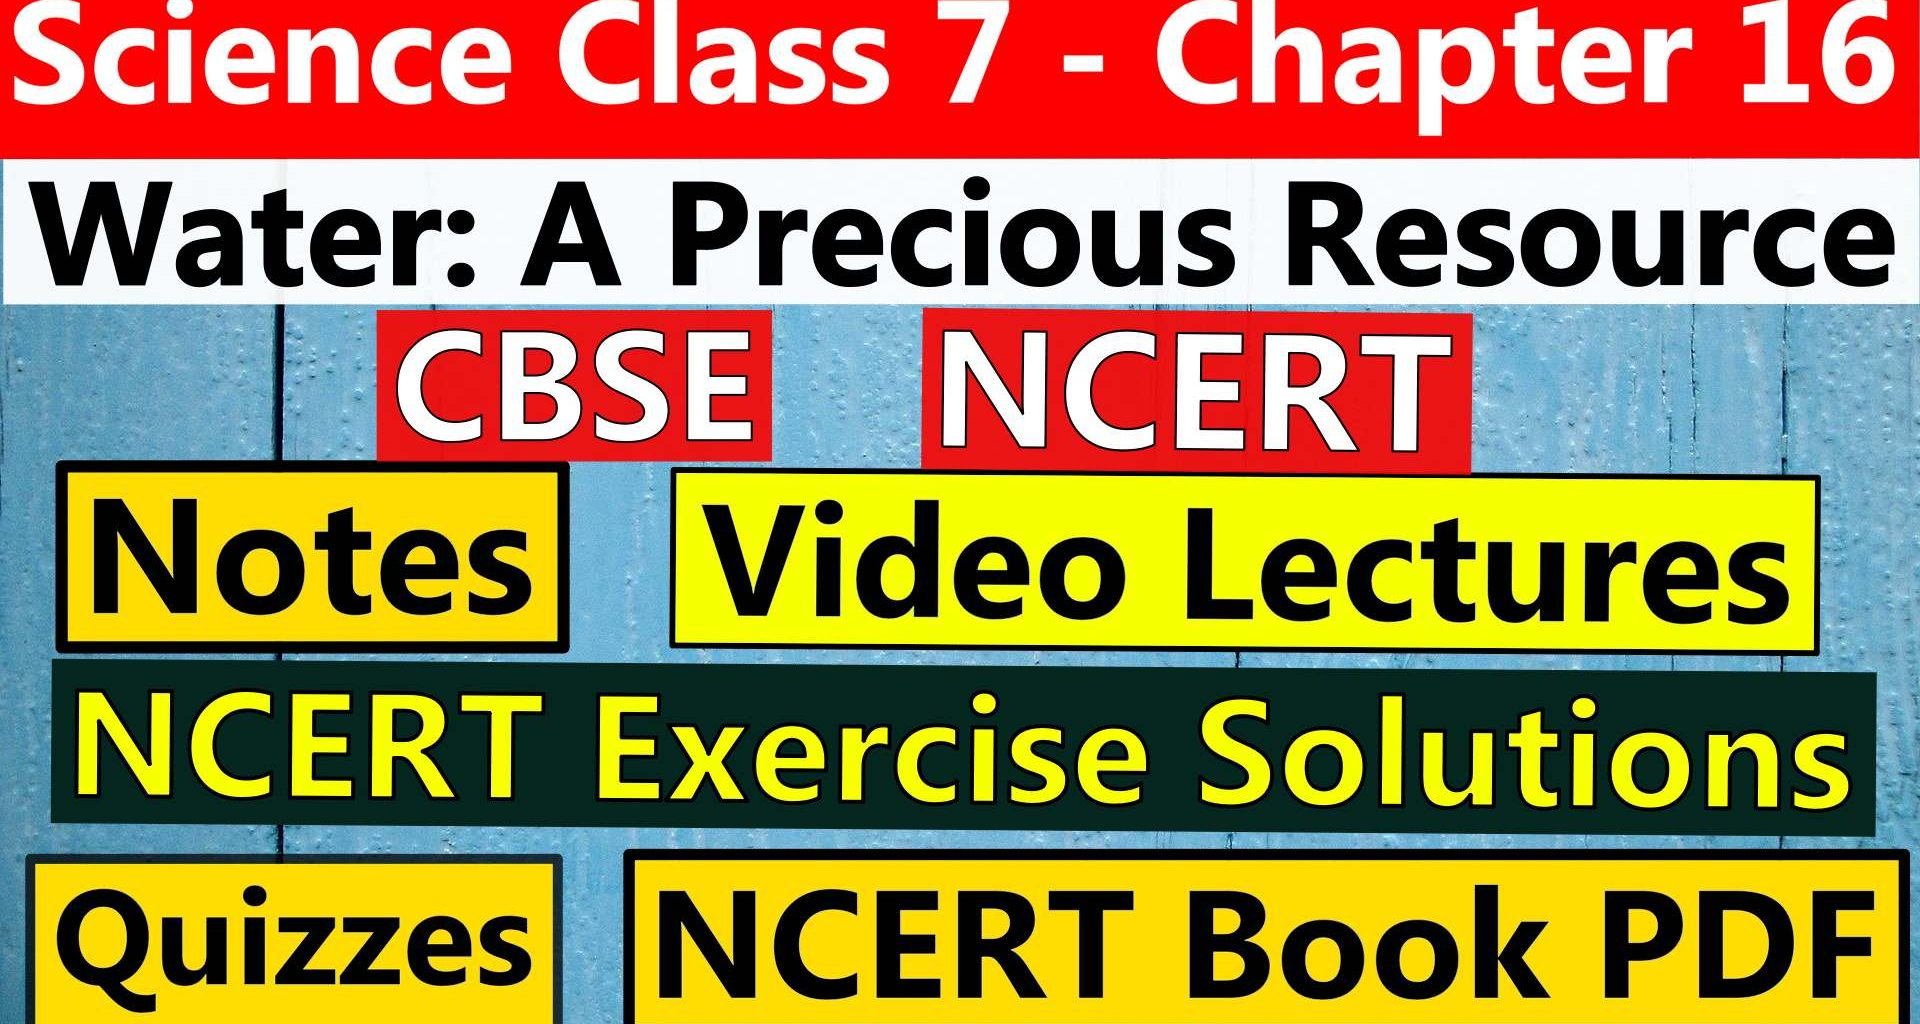 CBSE Science Class 7 Chapter 16- Water A Precious Resource - Notes, Video Lecture, NCERT Exercise Solution, Quizzes, NCERT Book Chapter 16 PDF Download, or View.